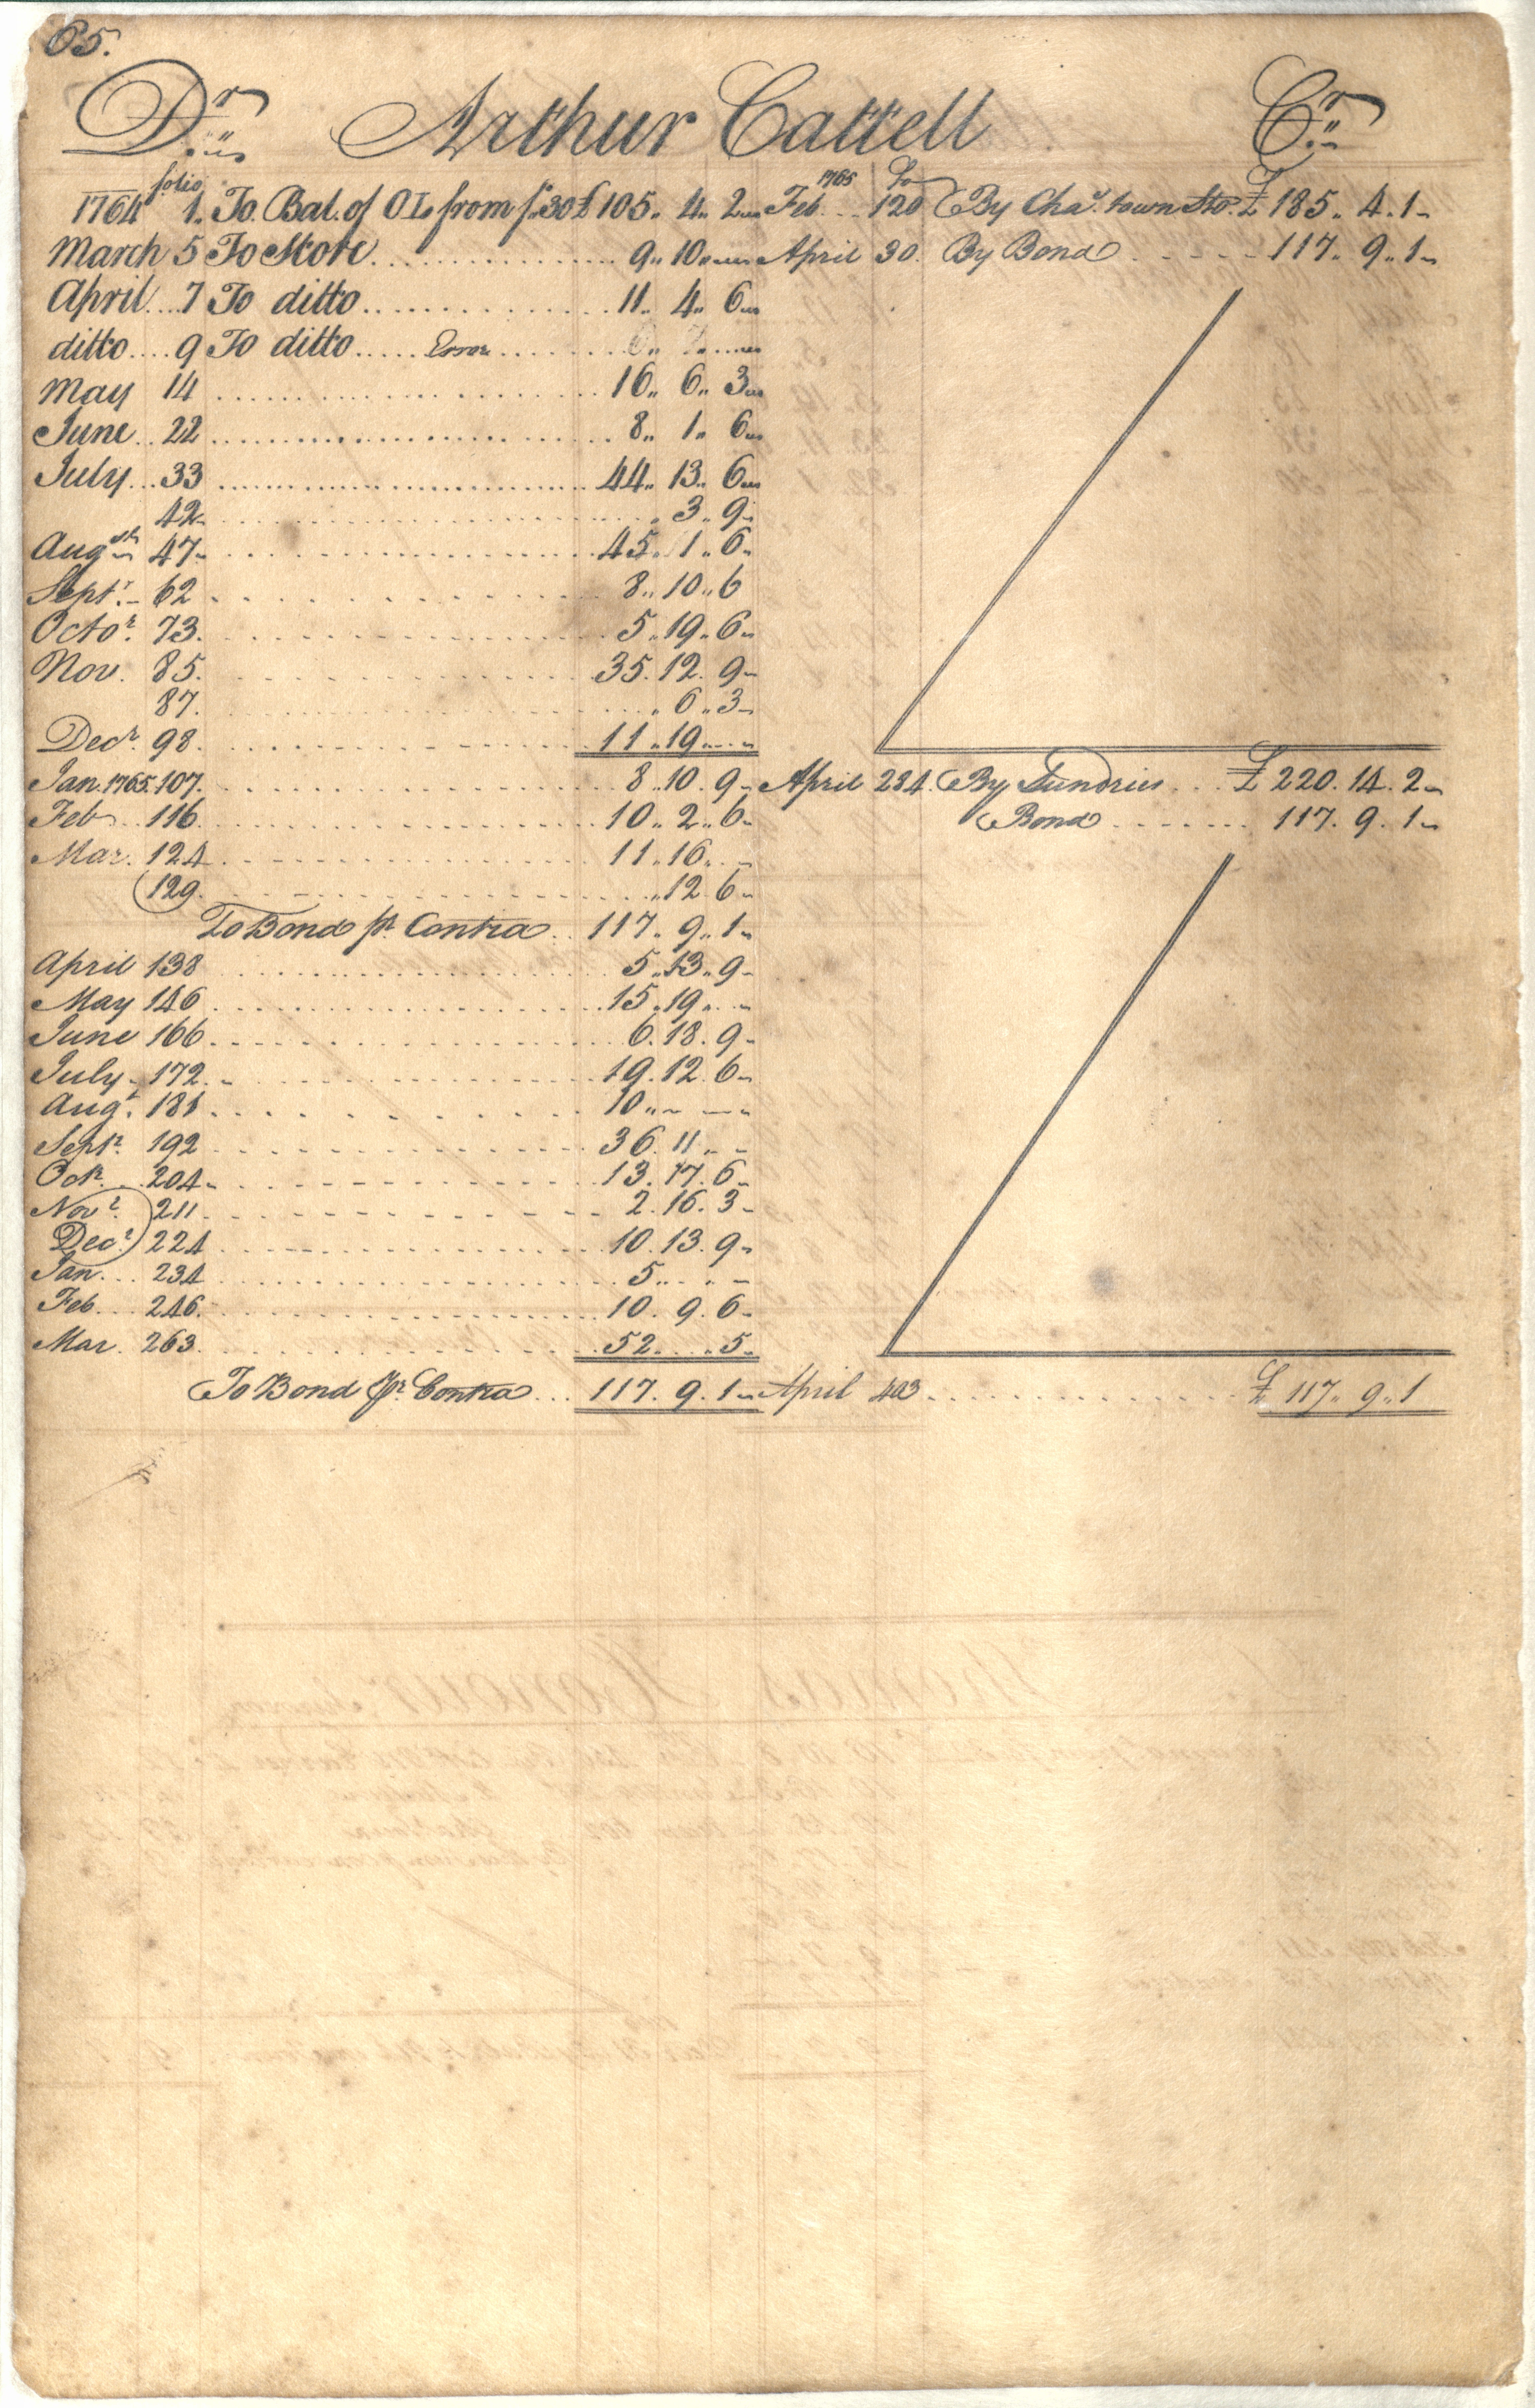 Plowden Weston's Business Ledger, page 65